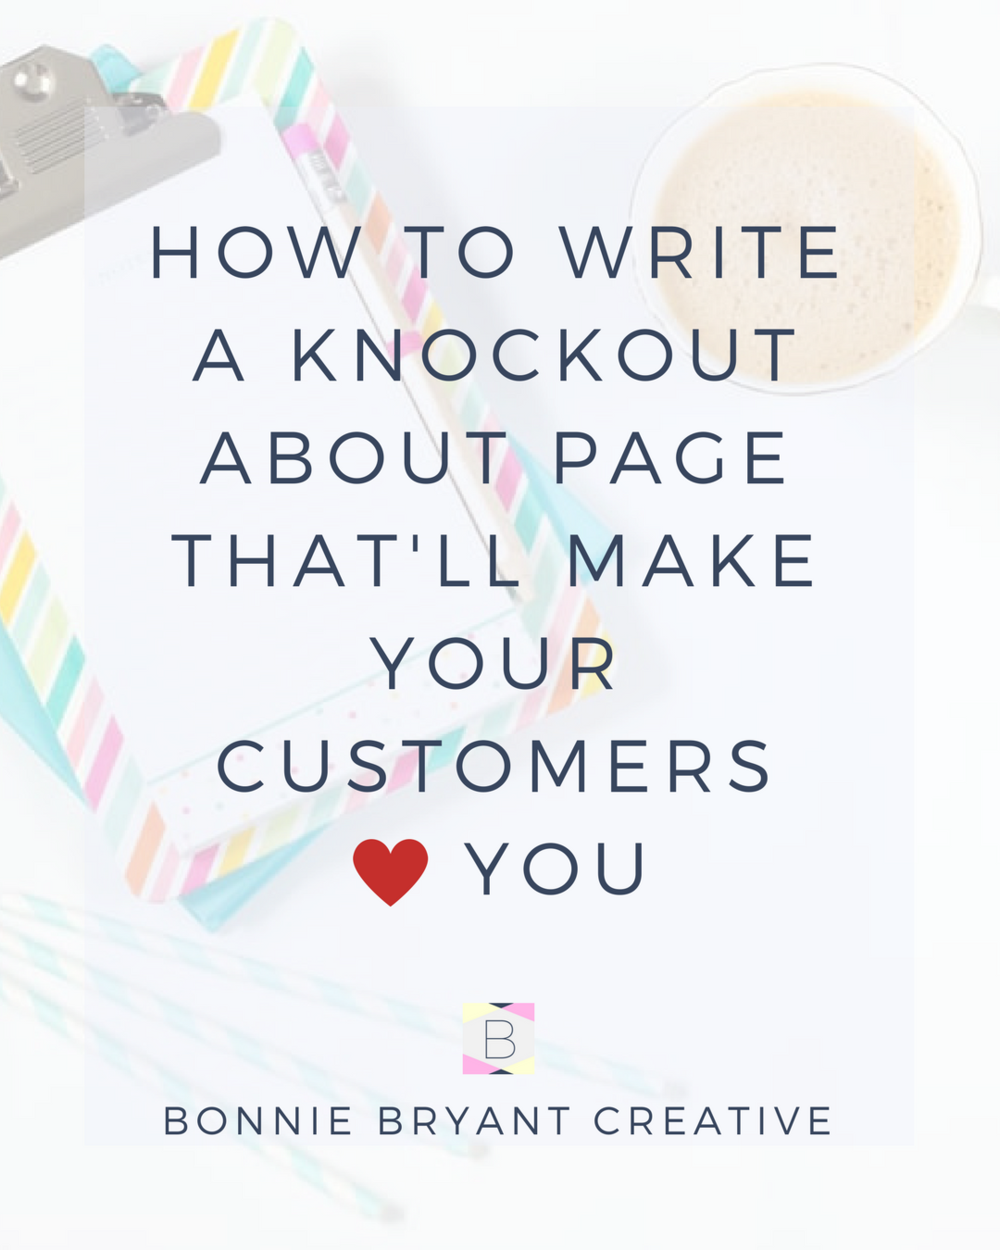 hire a creative content writer	 |  bonniebryantcreative